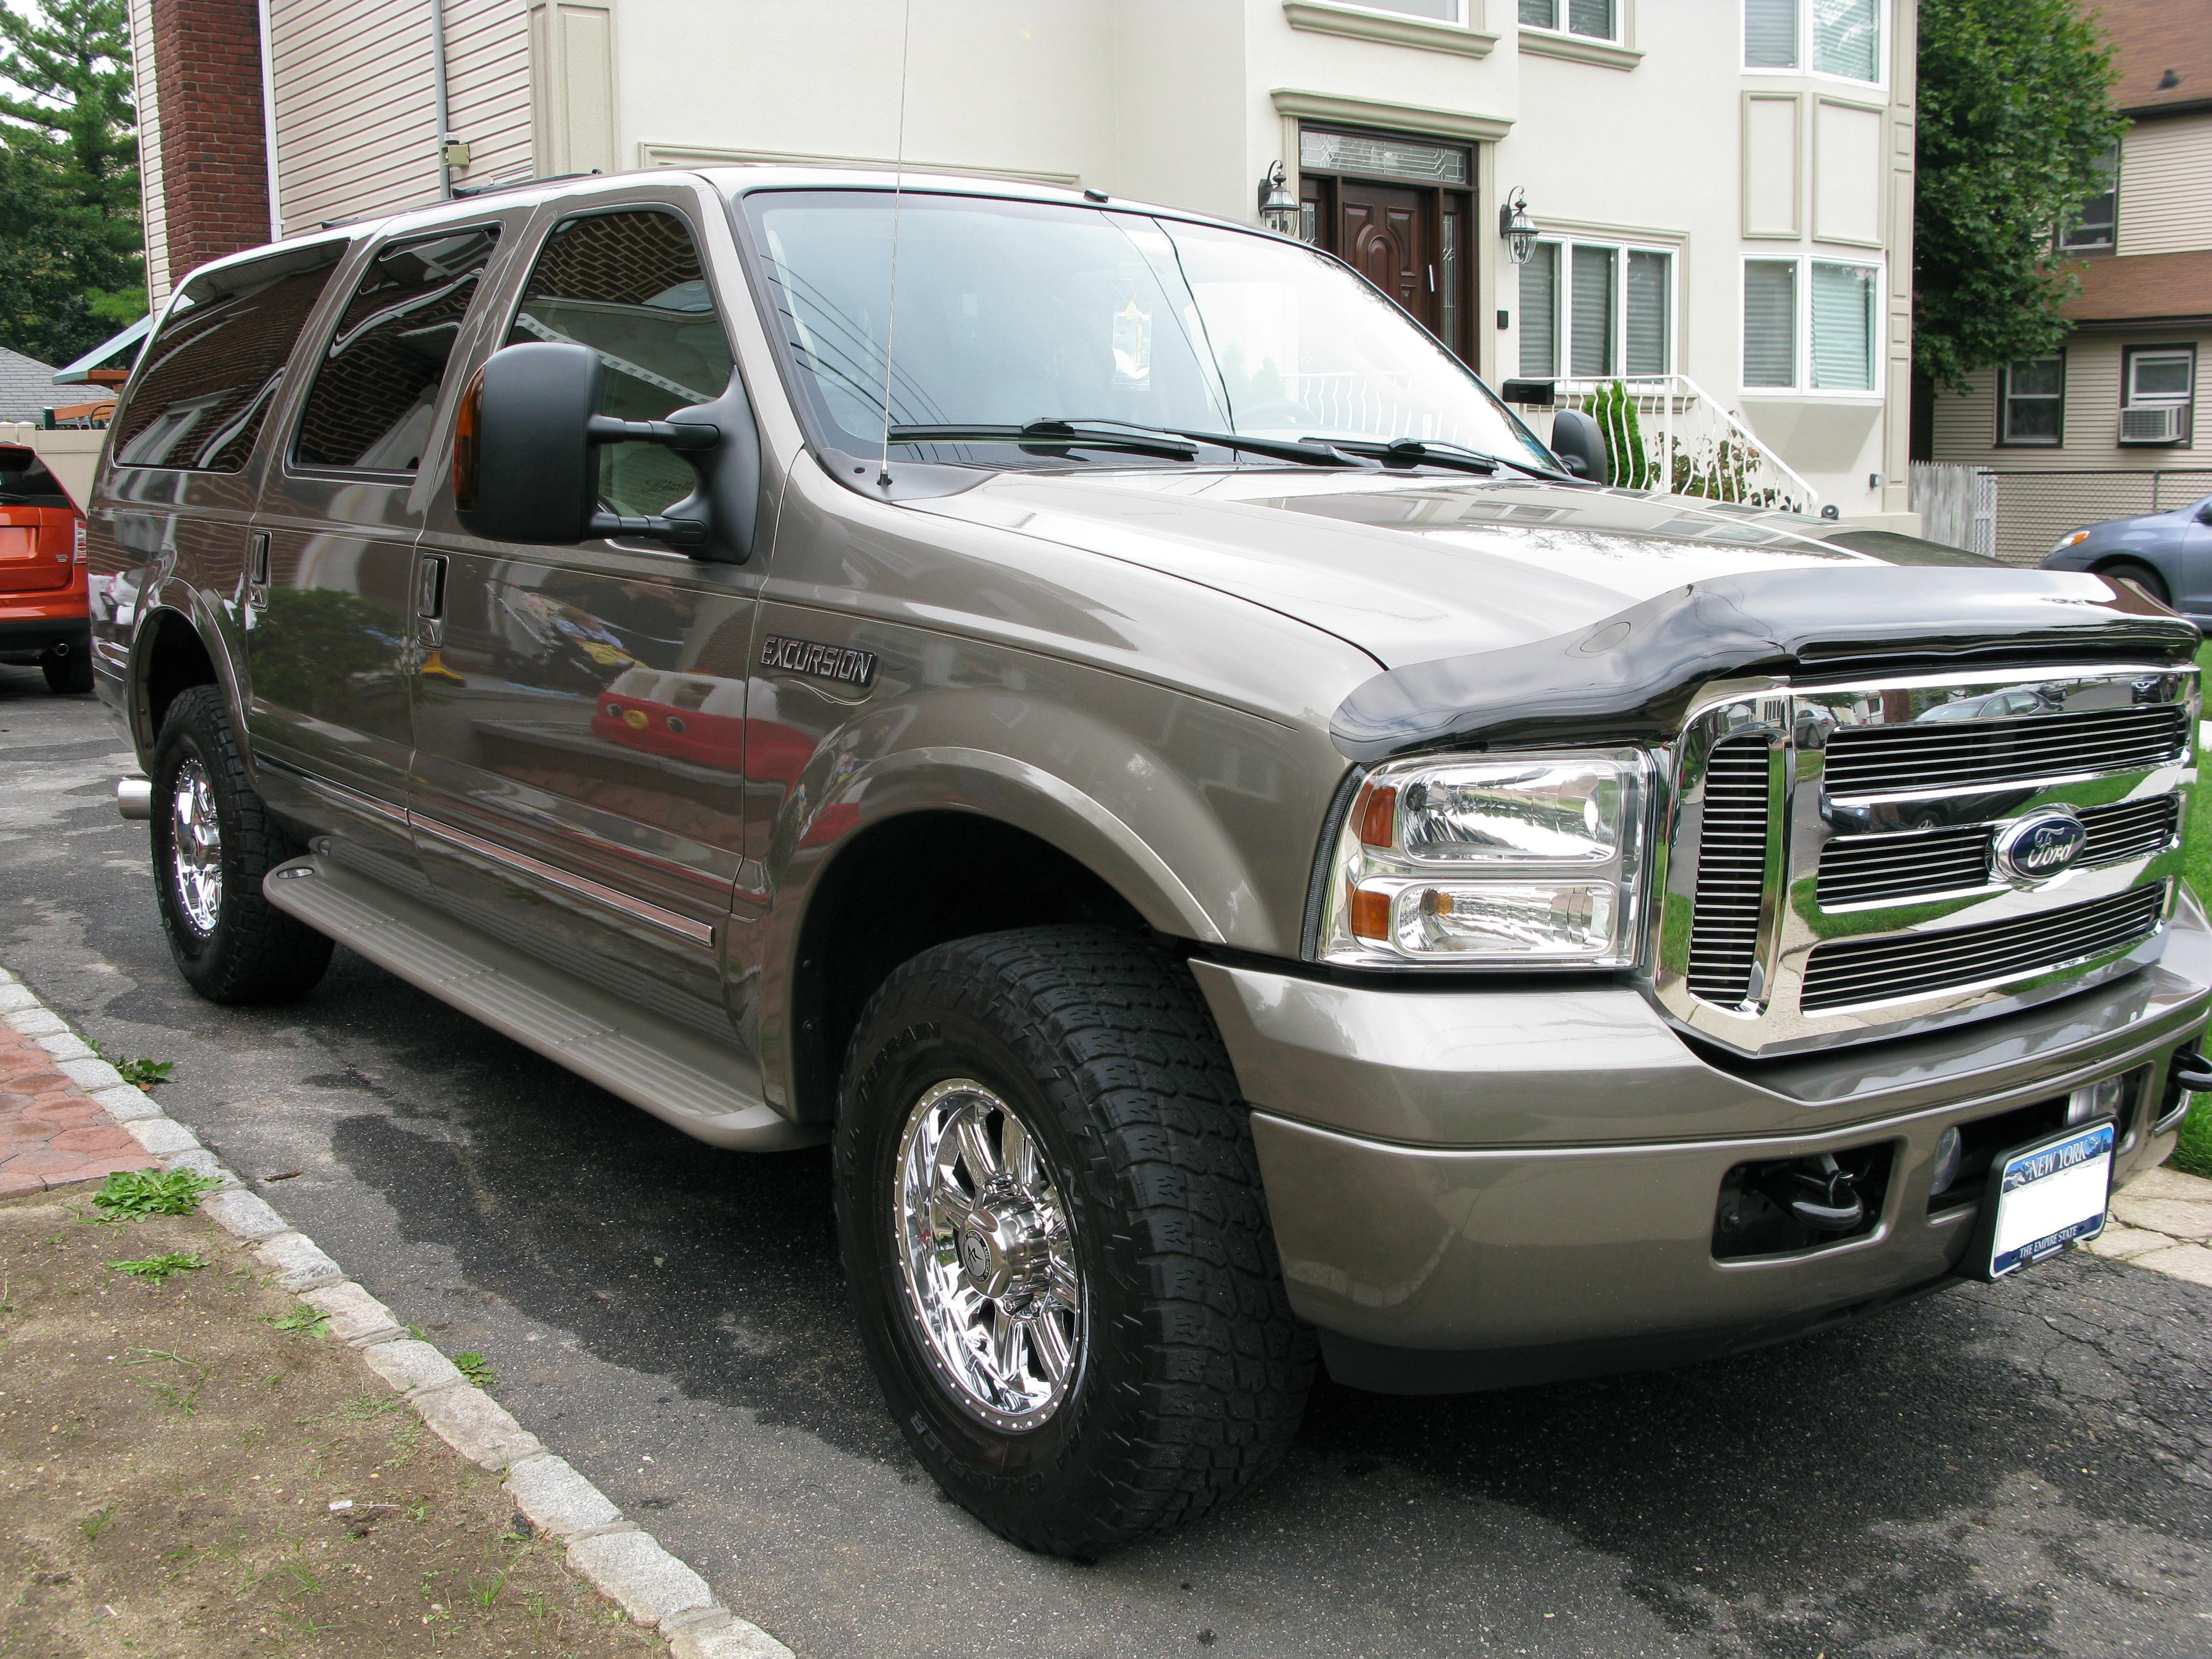 ford disposition cummins excursion auto duramax diesel highlights powerstroke mechanic mobile alloworigin repair accesskeyid